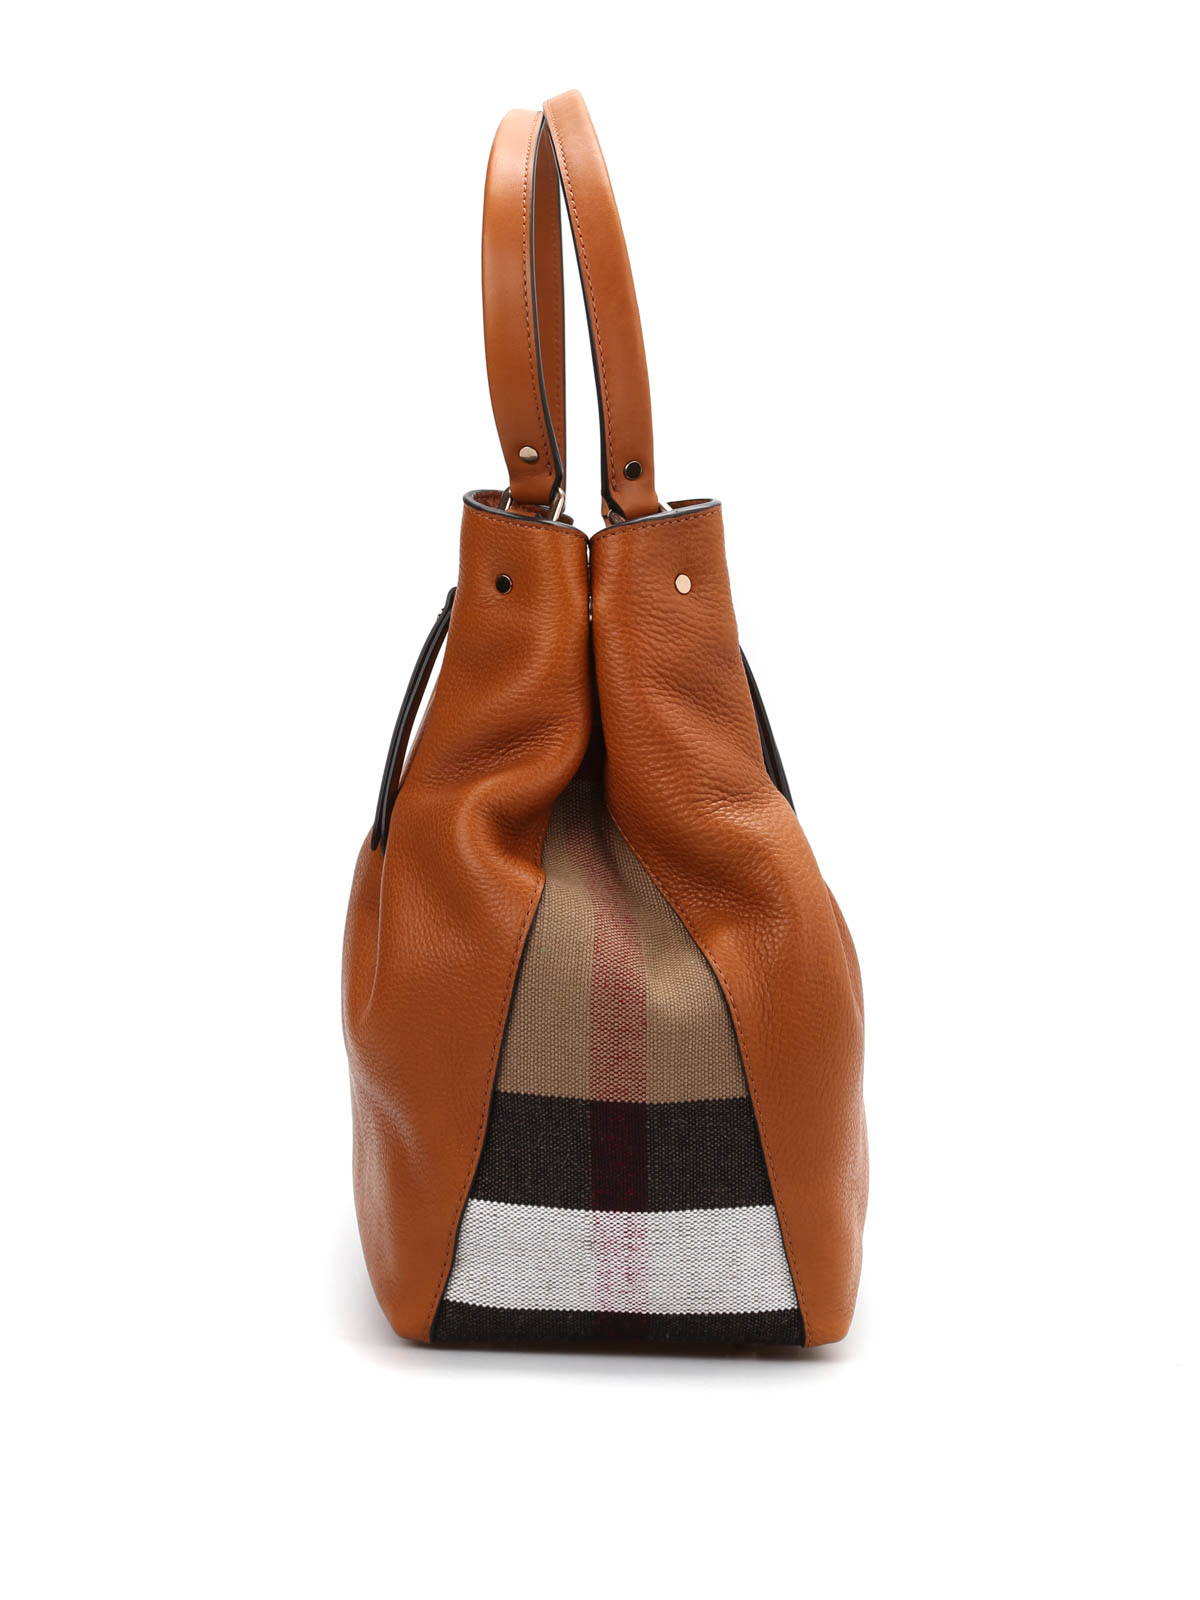 8ab27ab99ec7 Burberry - Medium tote with check detail - totes bags - 39636401 ...